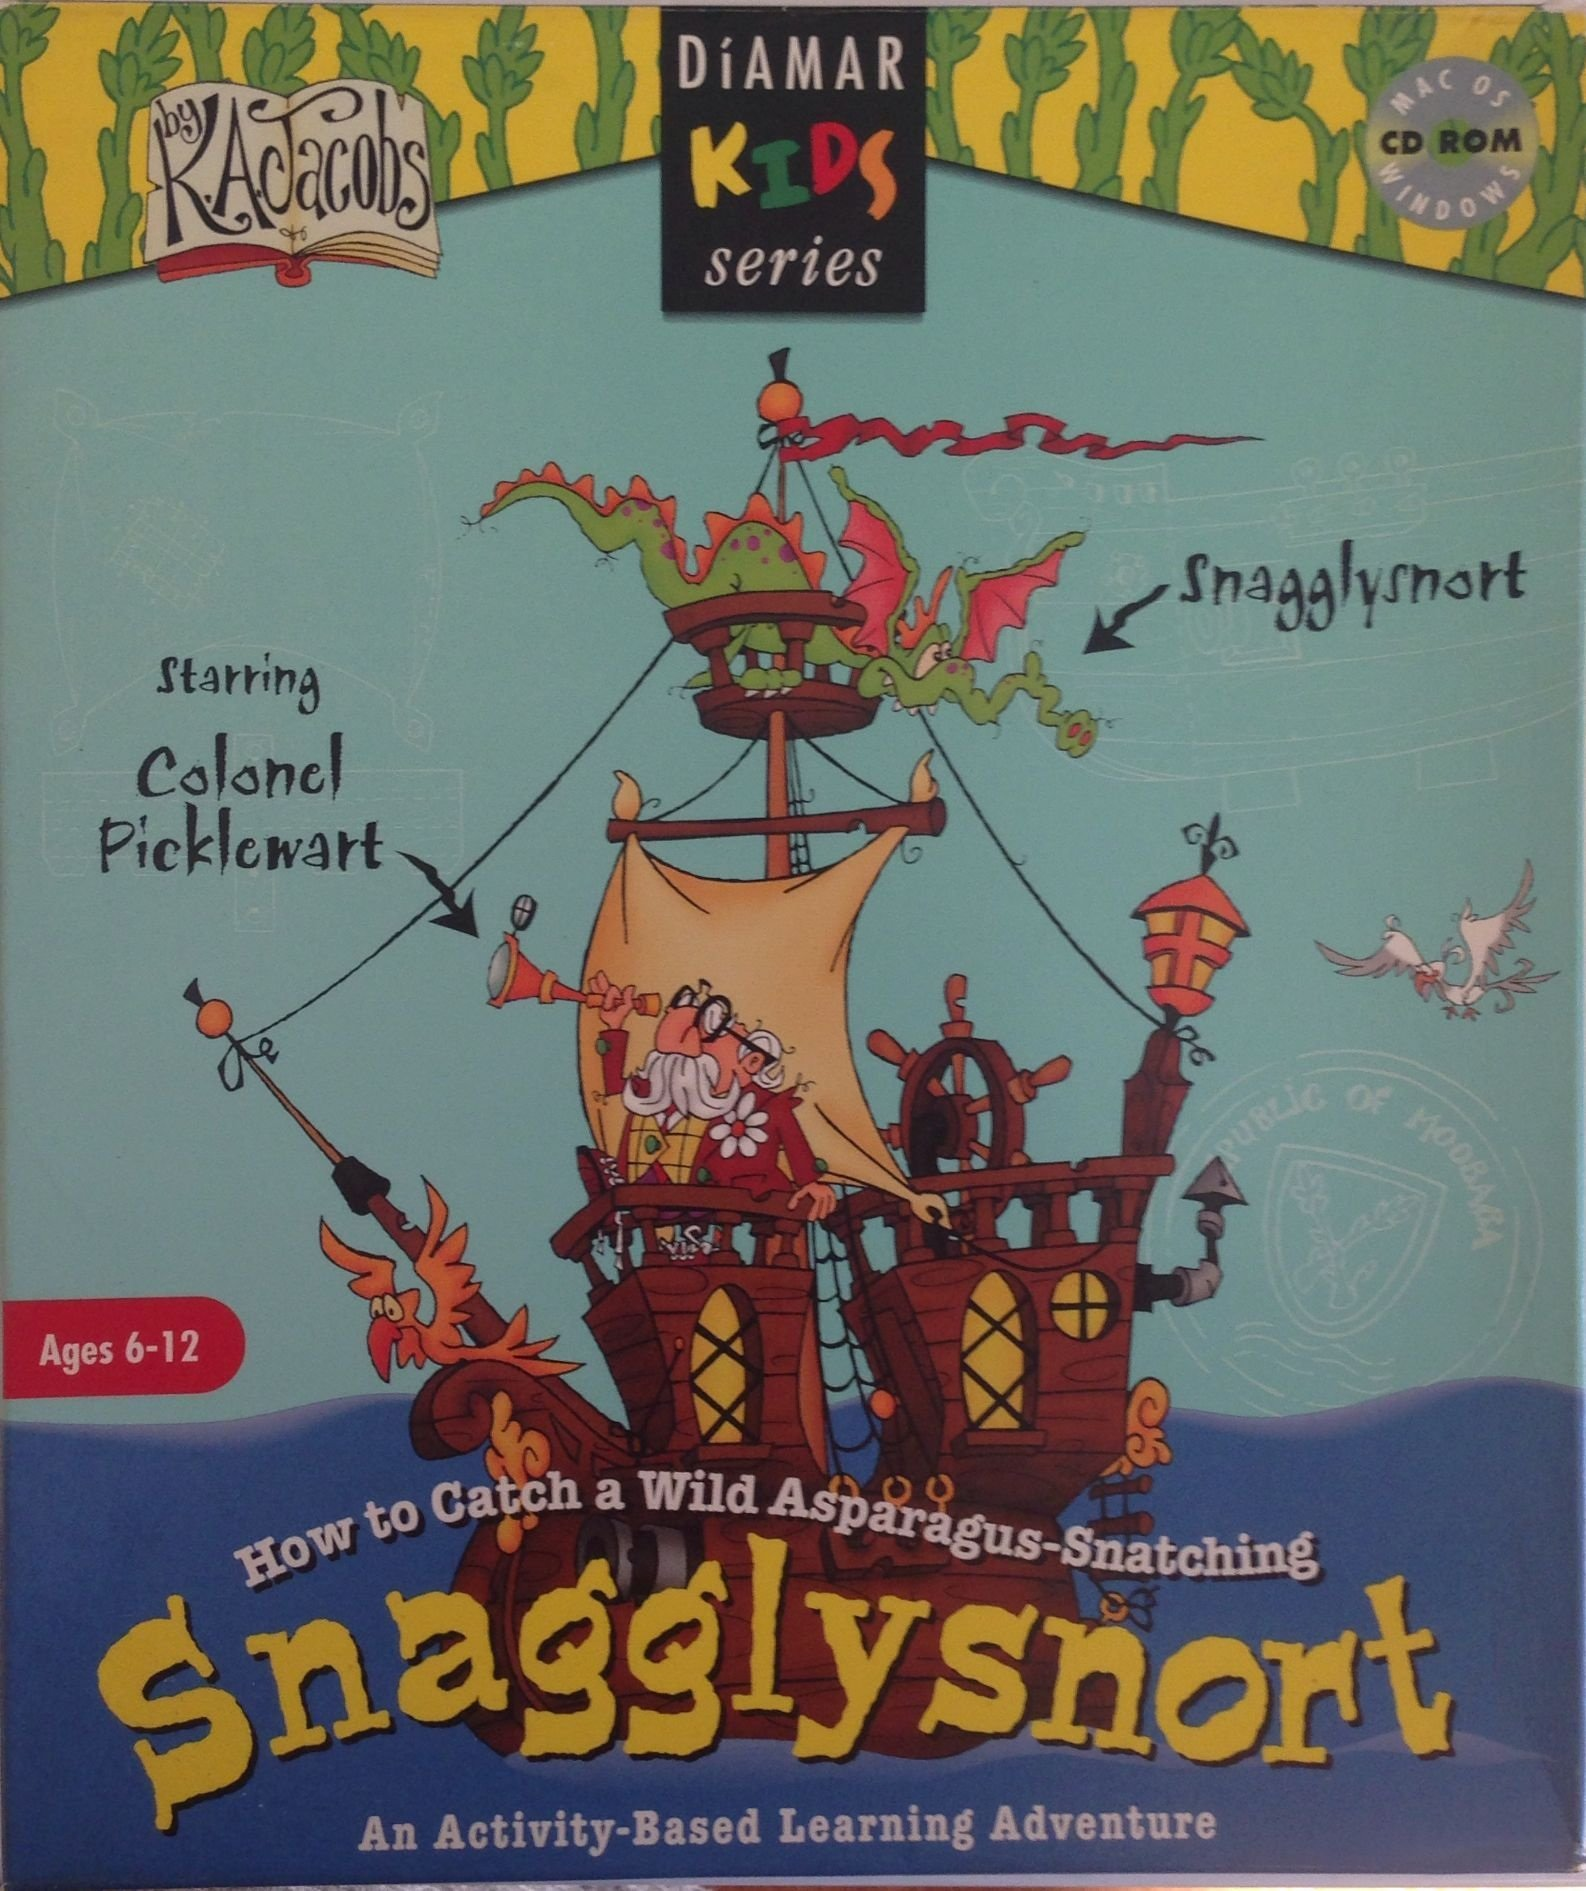 Download How To Catch a Wild Asparagus Snatching Snagglysnort (Ages 6-12) pdf epub